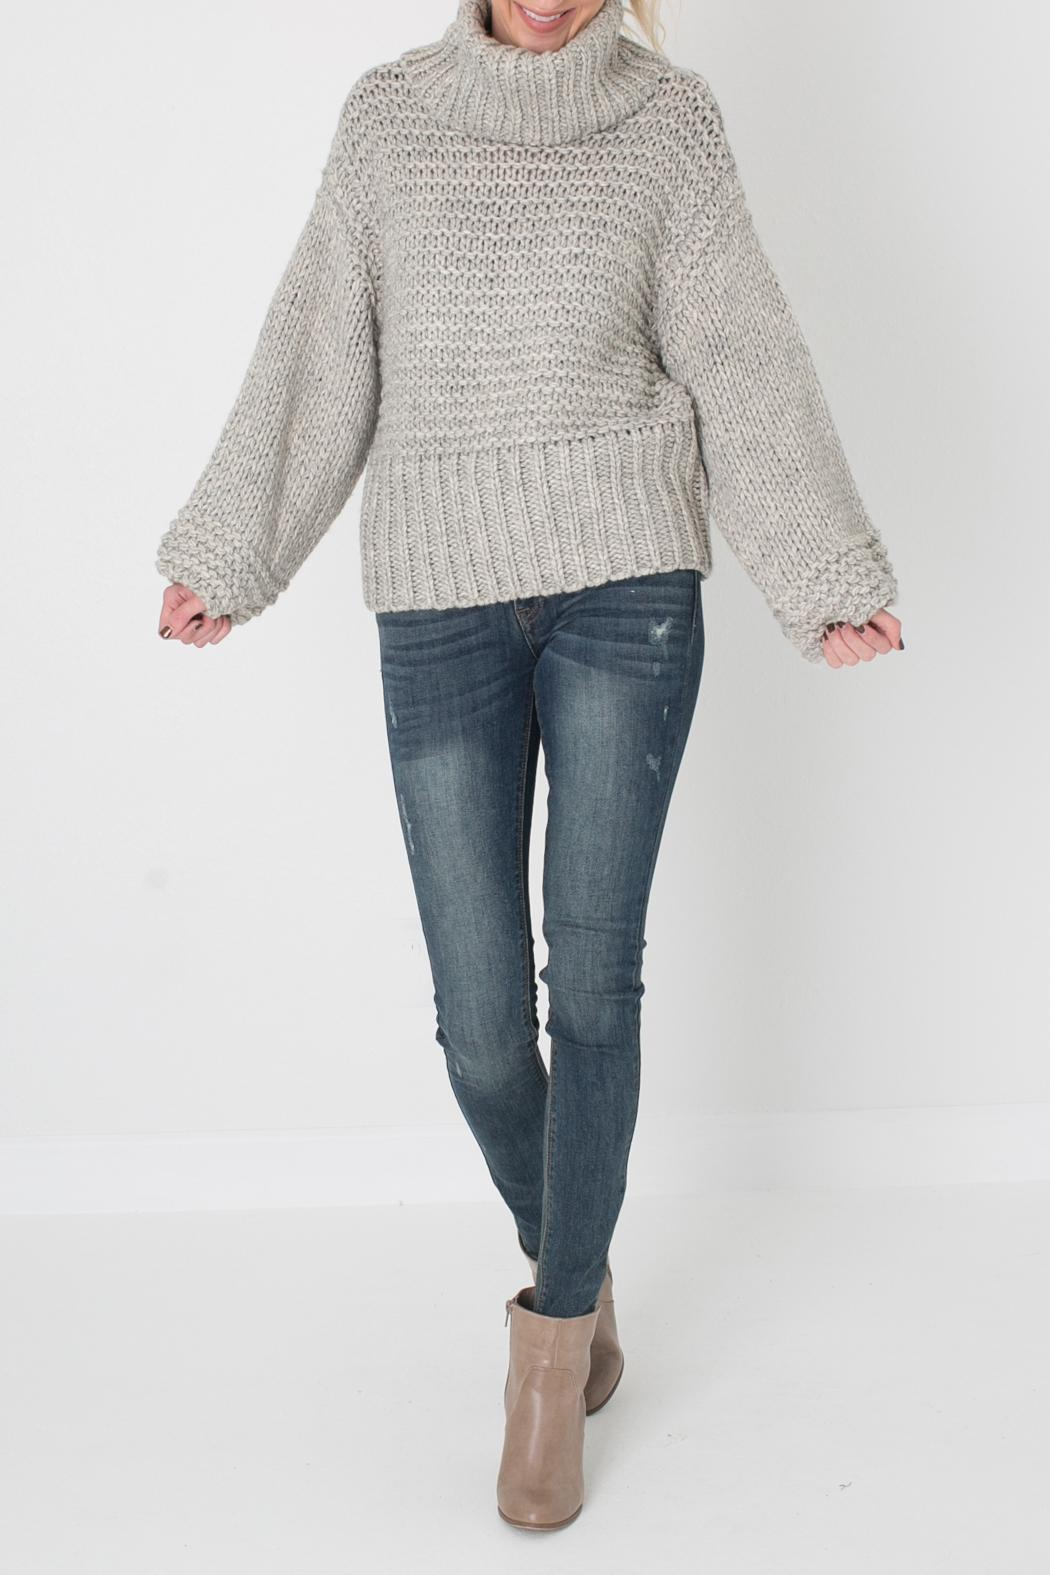 Lush Chunky Knit Sweater from Colorado by Apricot Lane ...